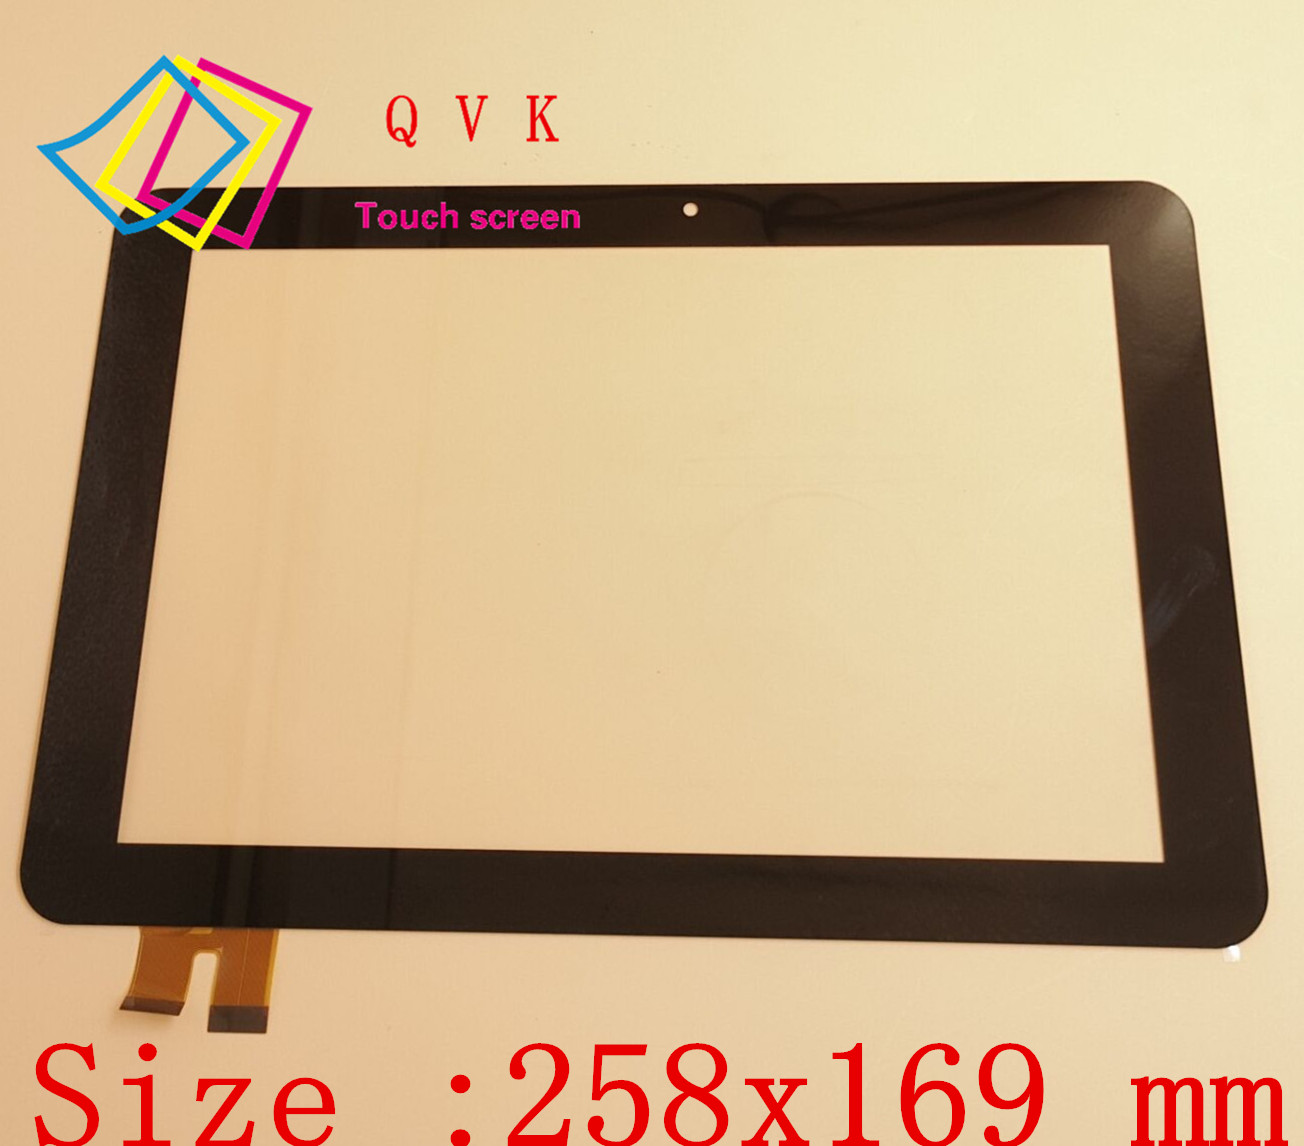 New 10.1 inch Tablet Touch Screen Tablet Glass Tablet Glass Sensor  MT10104-V2D new 7 inch tablet pc mglctp 701271 authentic touch screen handwriting screen multi point capacitive screen external screen